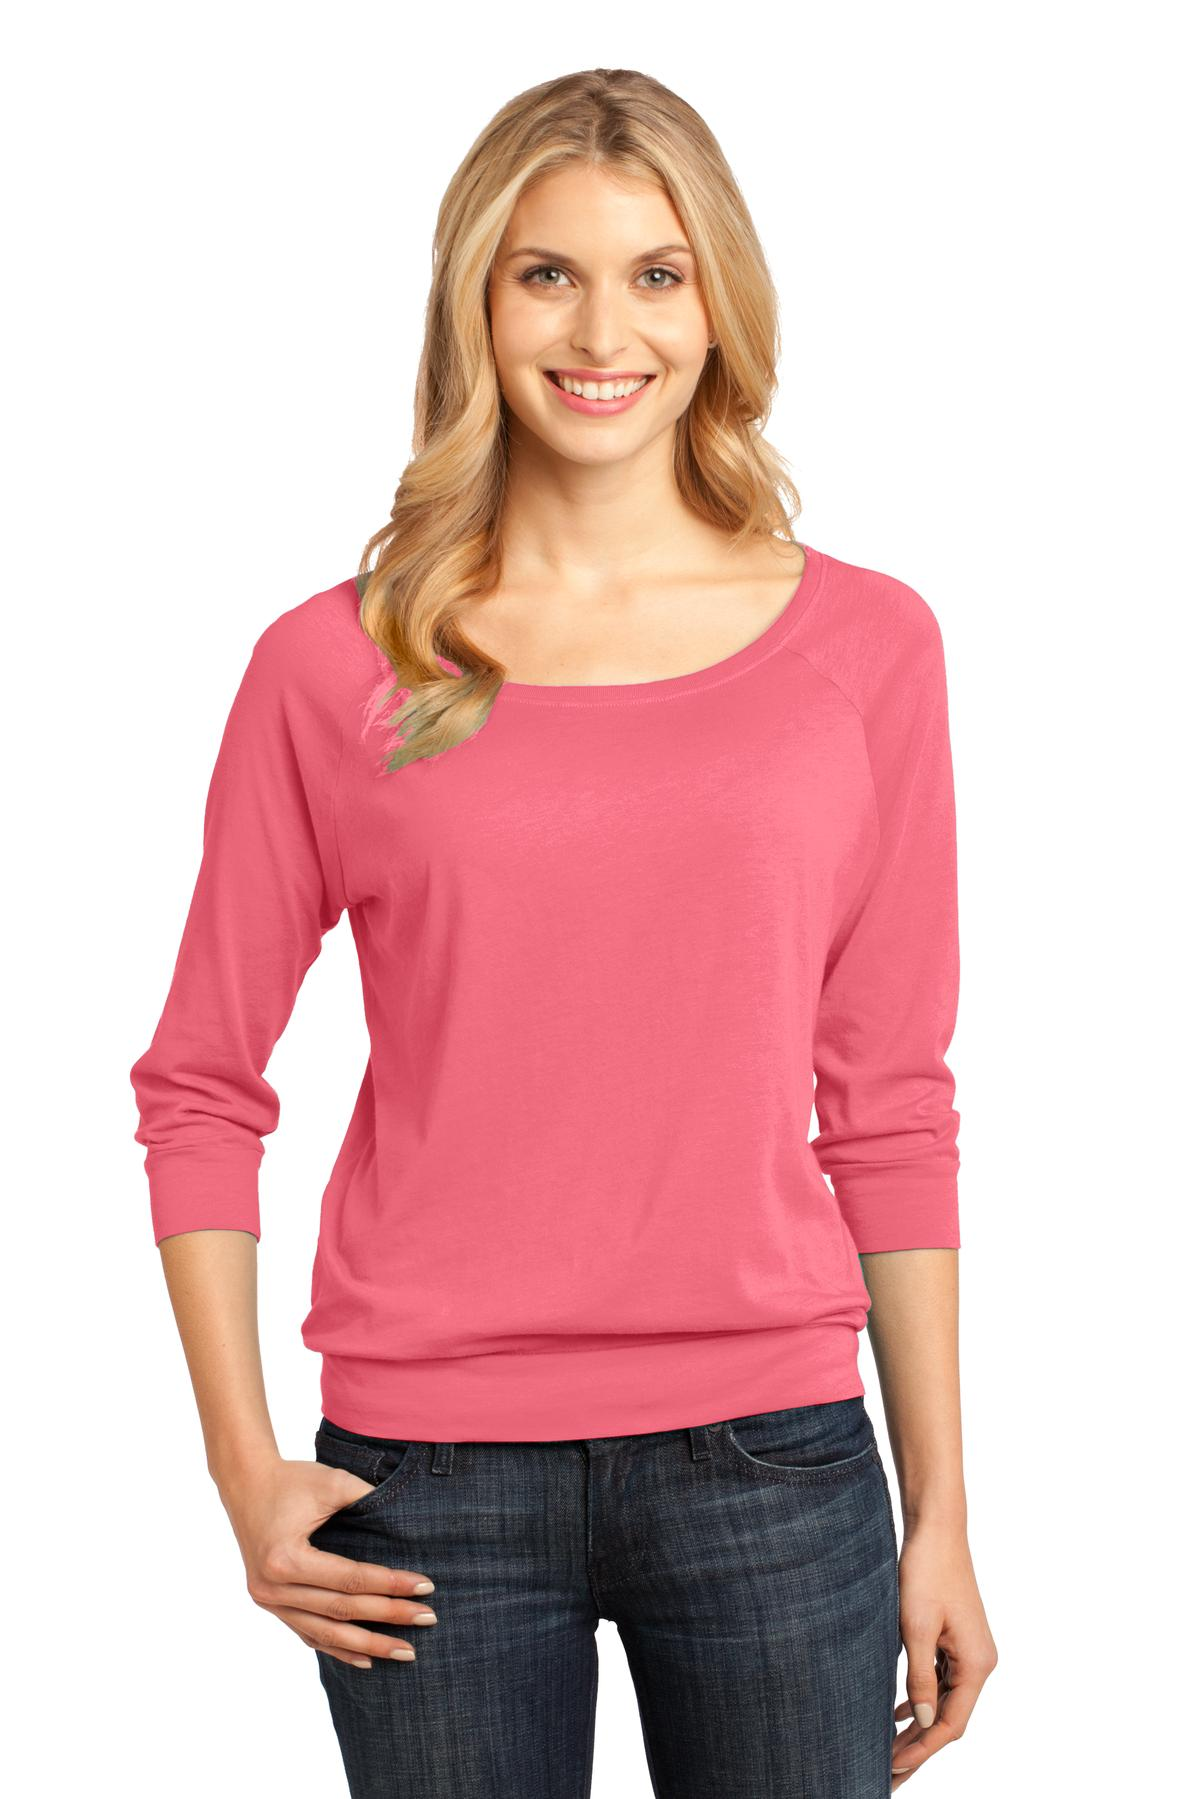 CLOSEOUT District Made - Ladies Modal Blend 3/4-Sleeve Raglan DM482